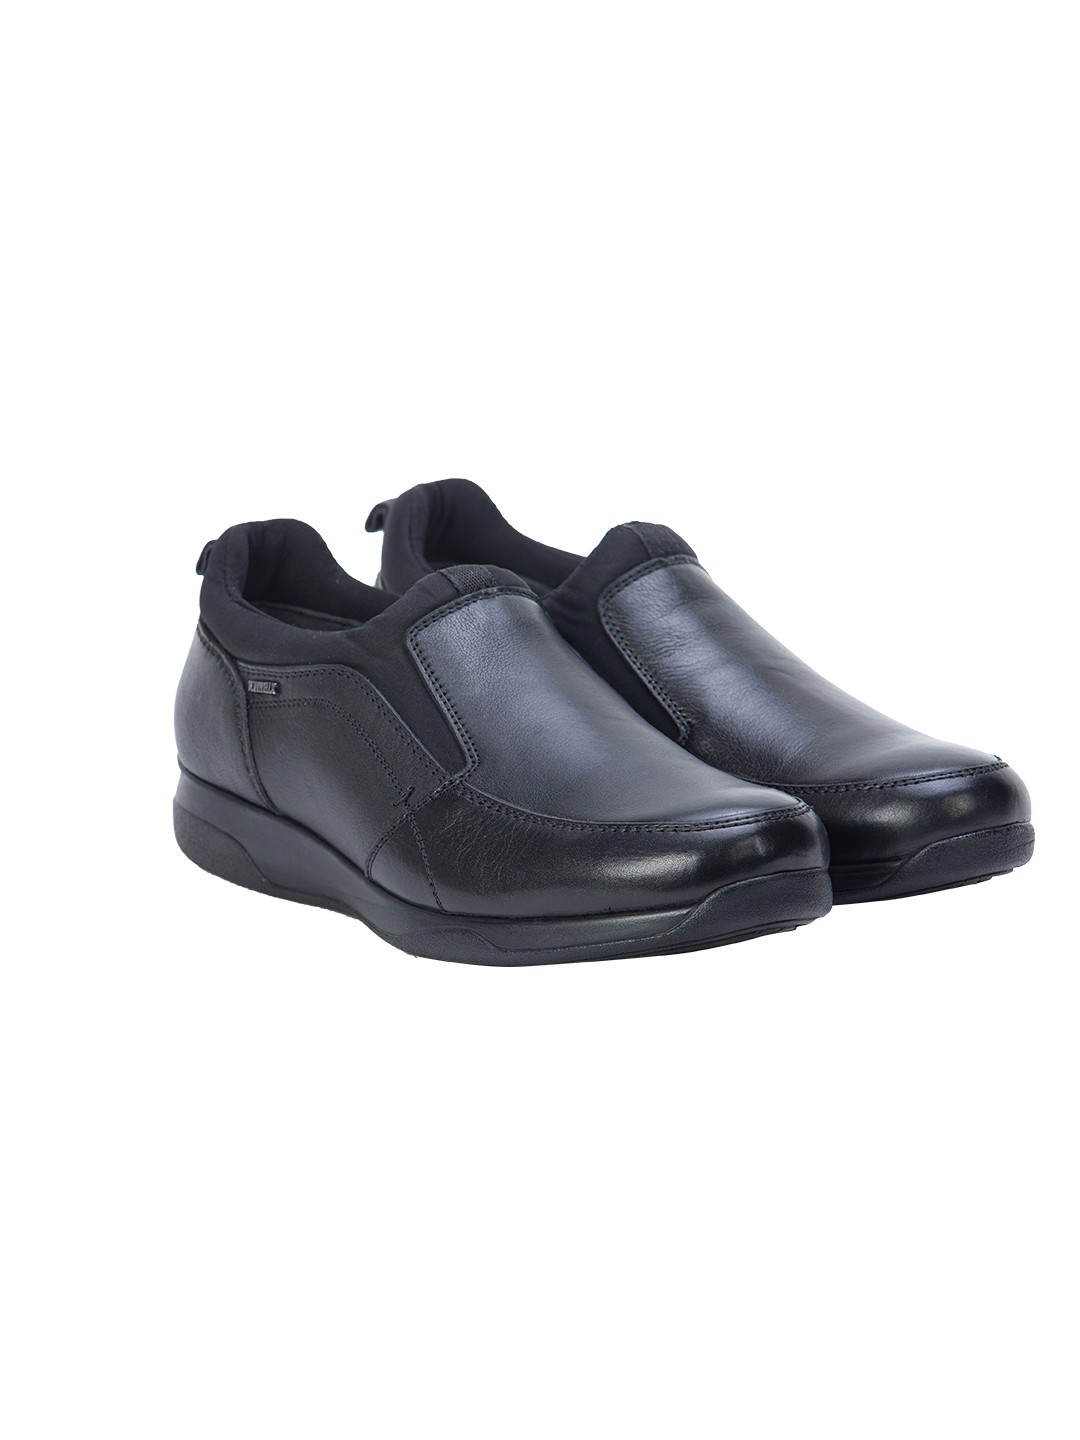 Buy Von Wellx Germany Comfort Jason Black Shoes Online in Pune